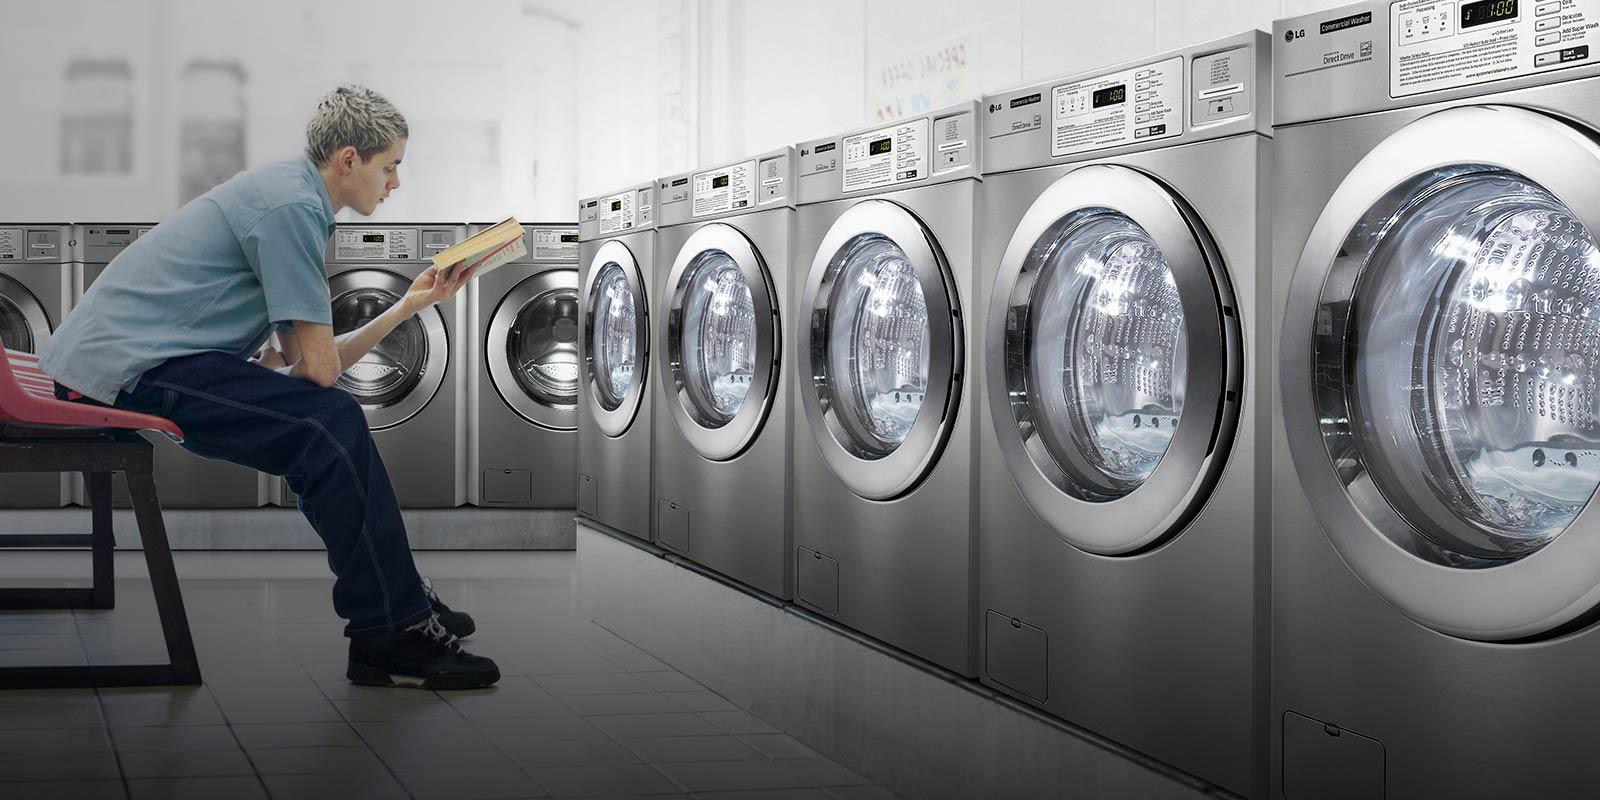 Choose LG Giant C+ commercial tumble dryers because they will help you grow your business